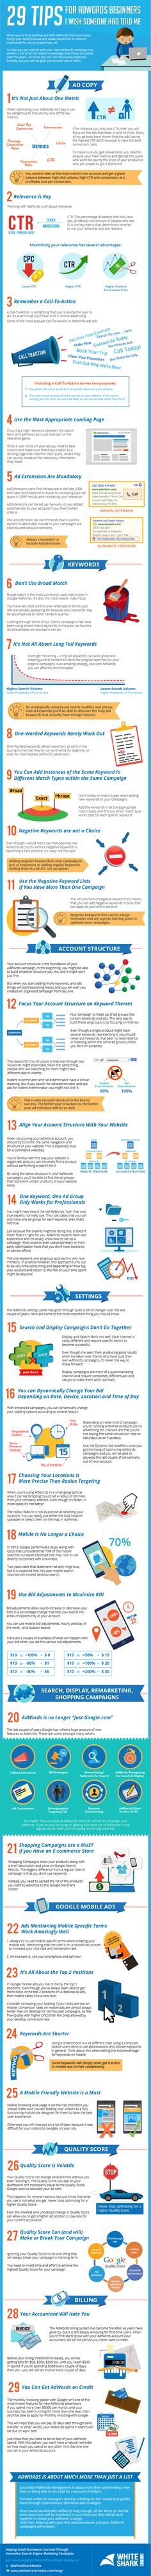 29 Tips for AdWords Beginners I Wish Someone Had Told Me - [Infographic]